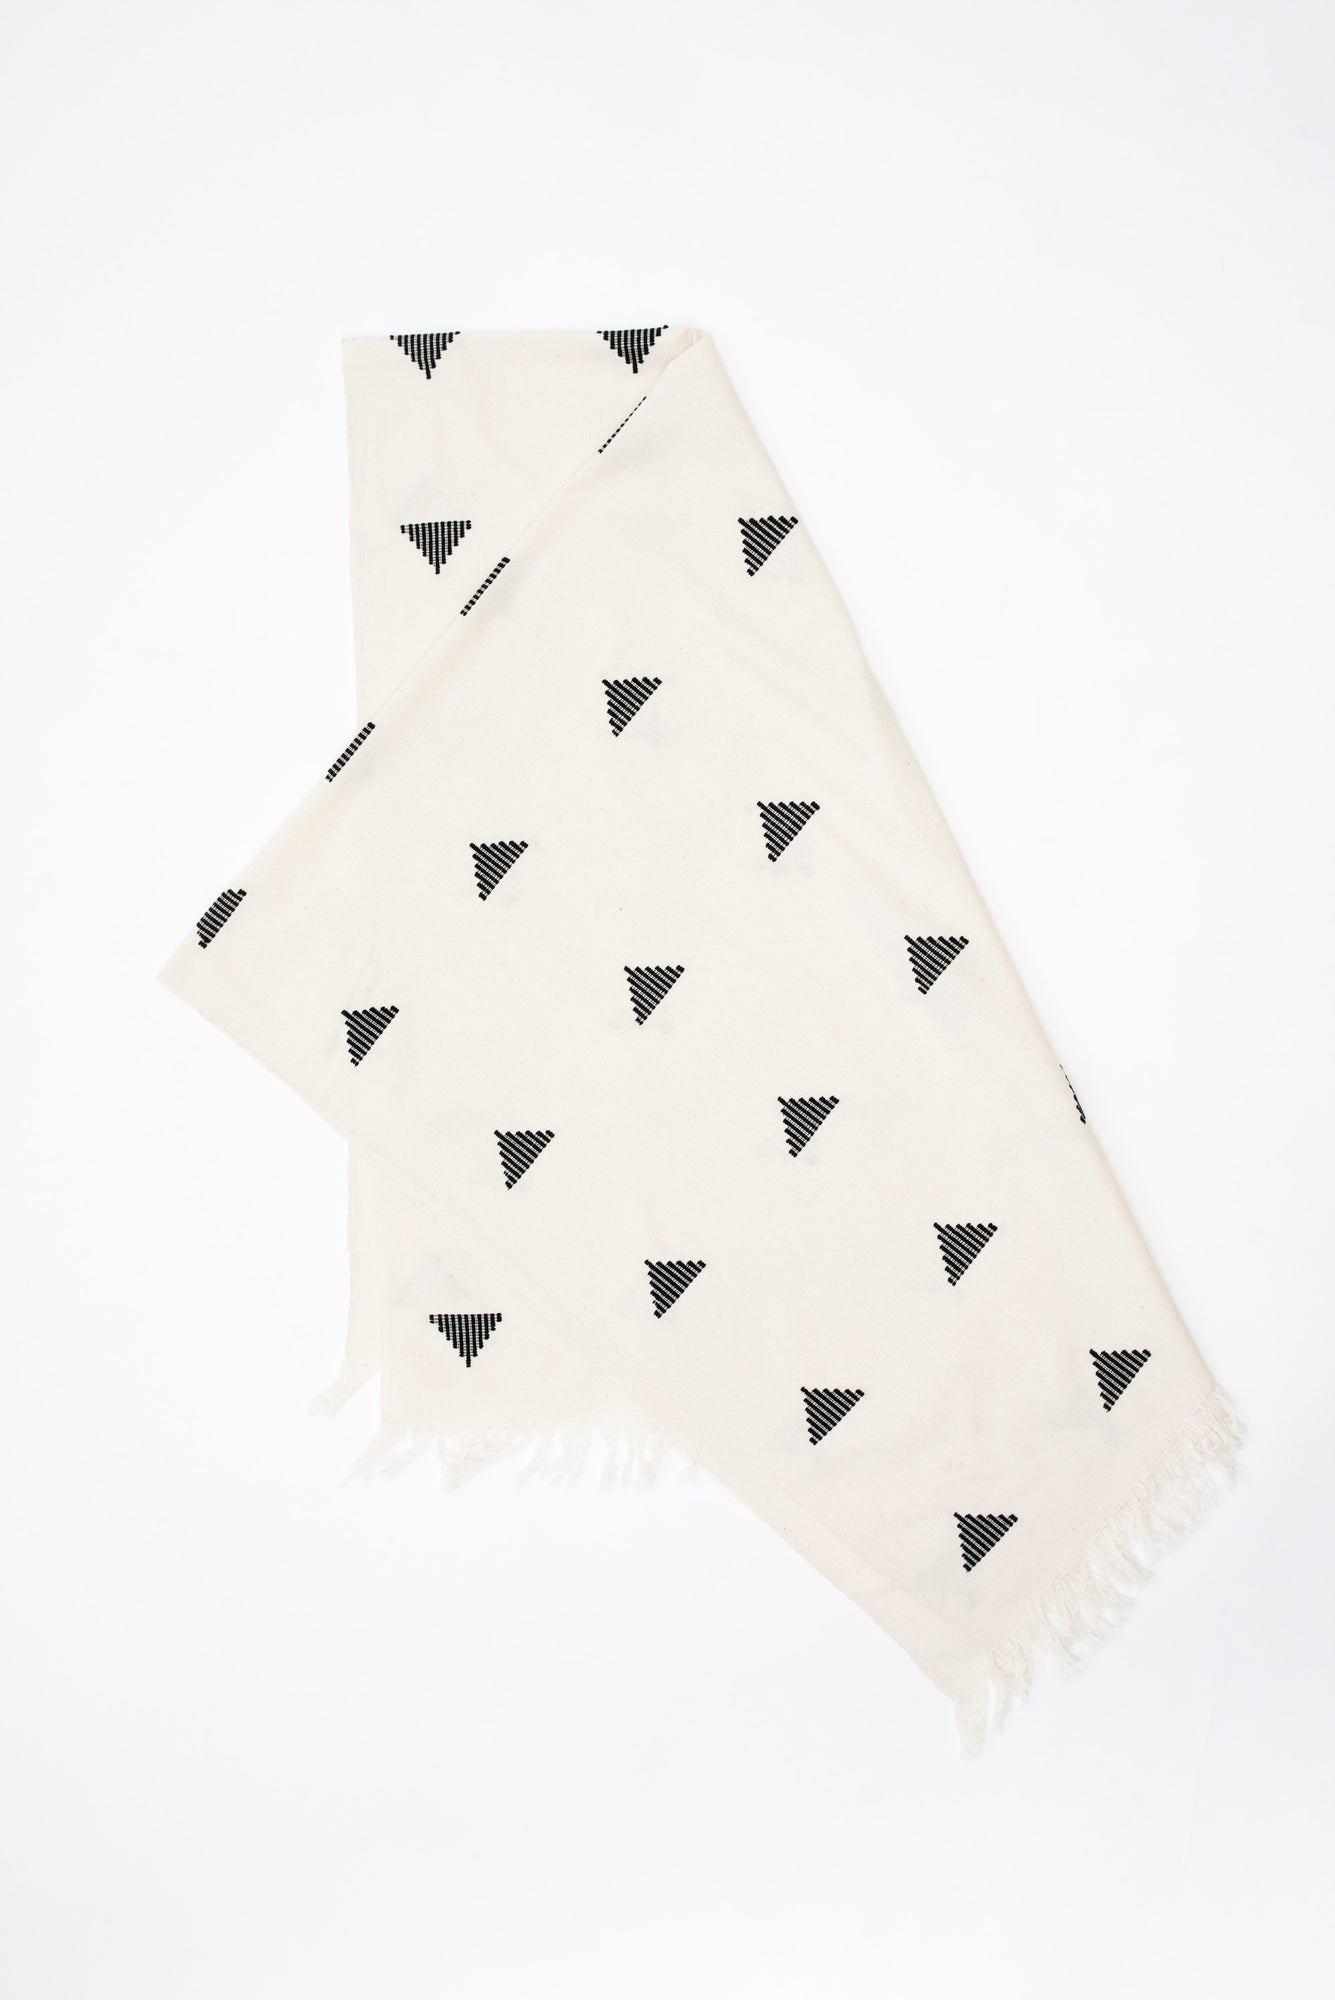 Big Sur Black Triangle Blanket